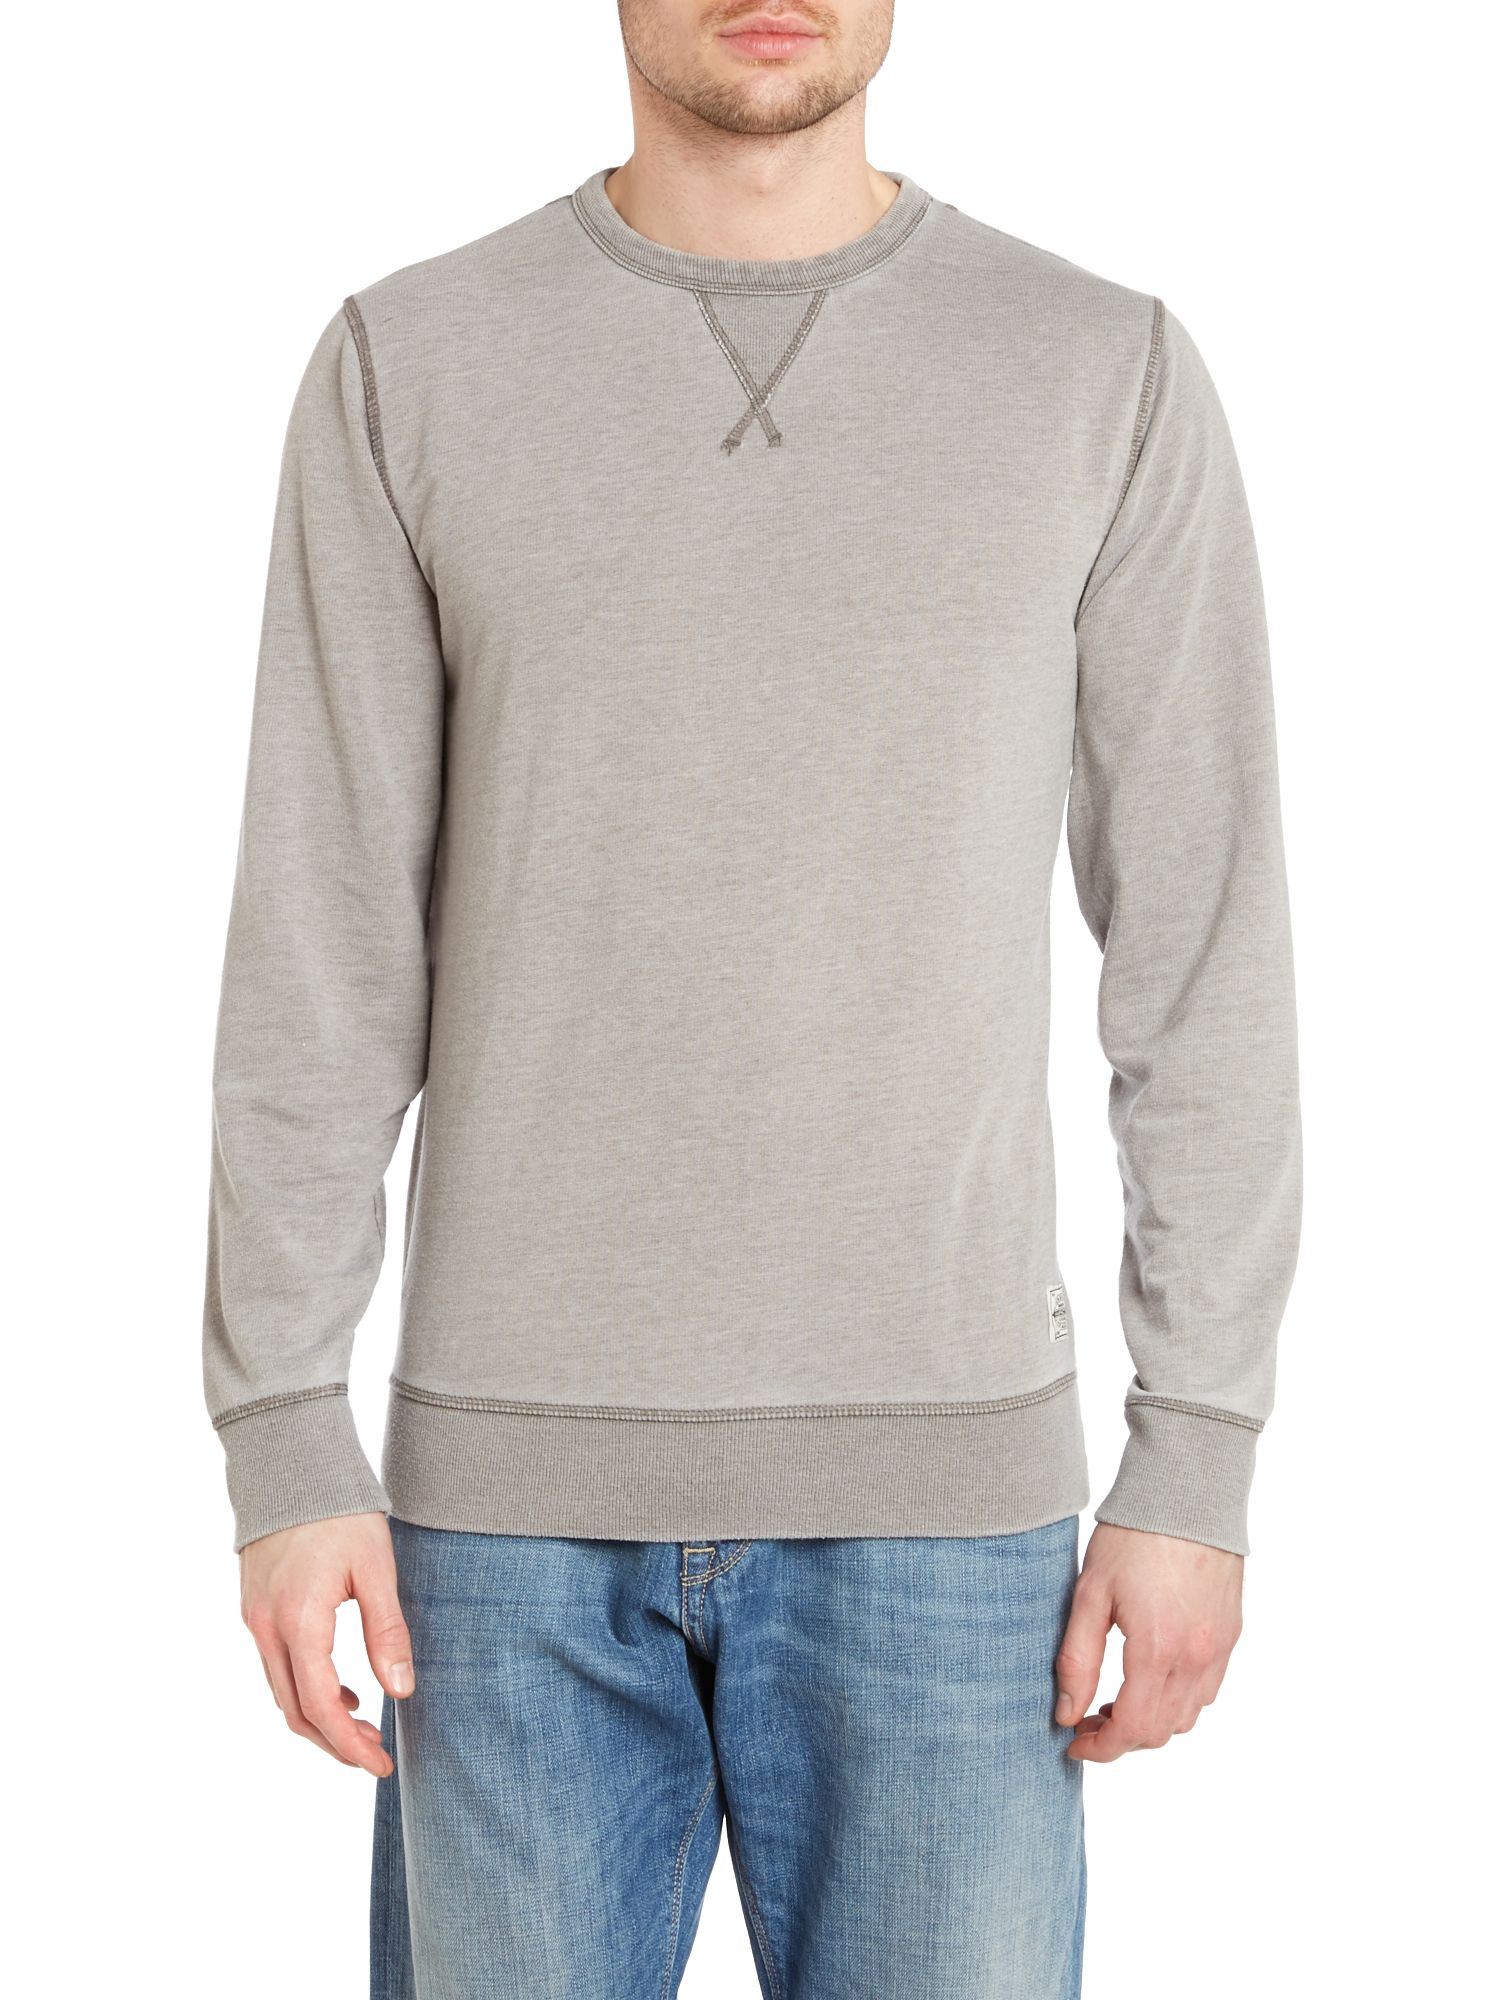 Crew neck essential sweat